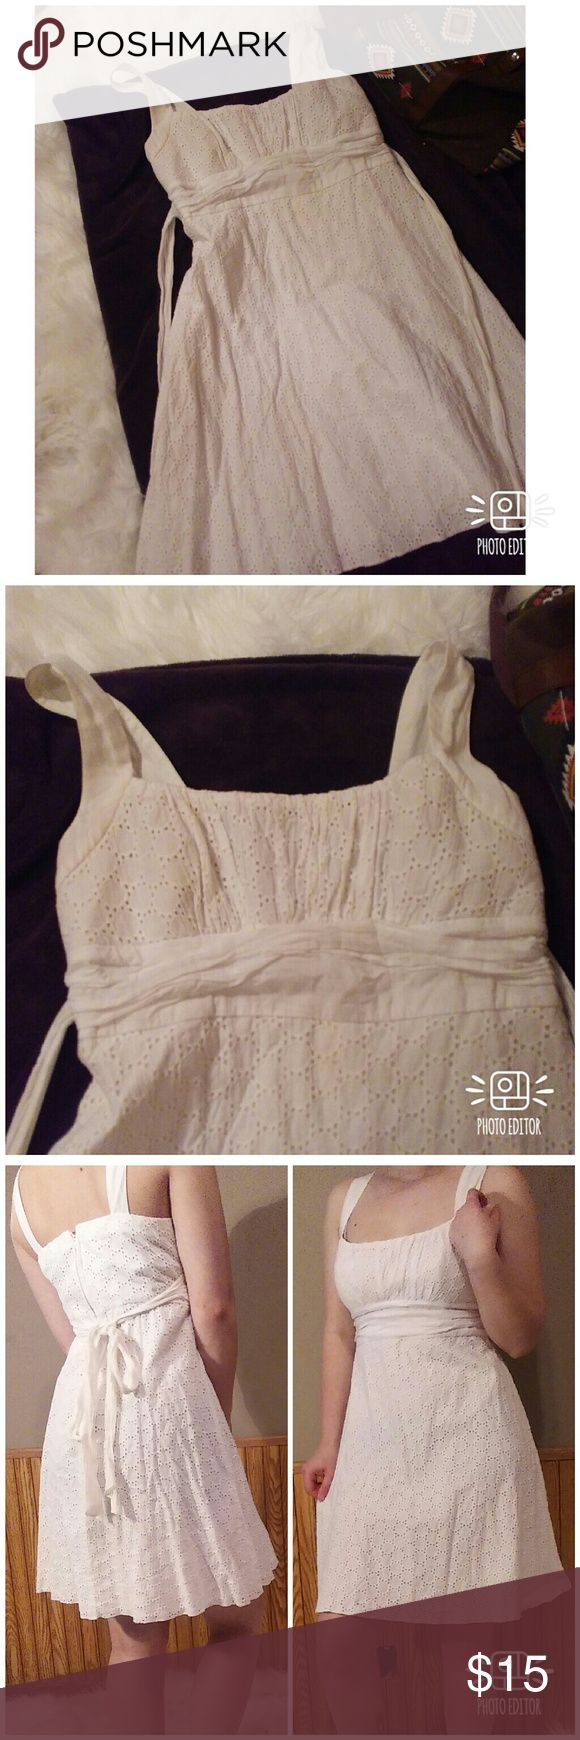 White Crochet Dress White dress with a circle crochet pattern. Ribbon tie in the back. B. Smart Dresses